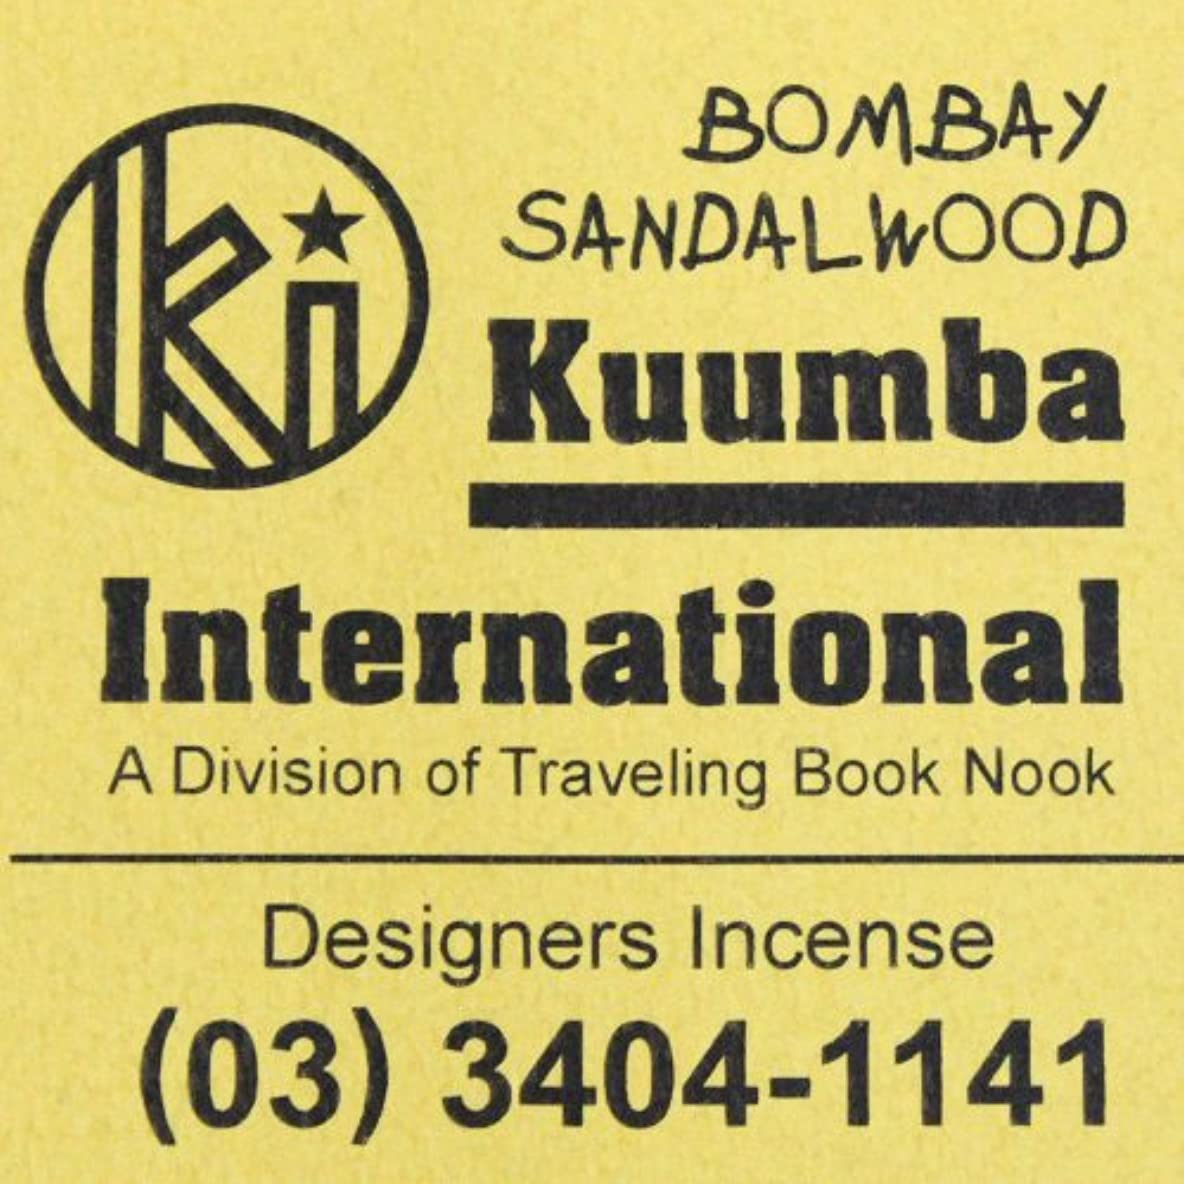 ミュート雑多な課税KUUMBA (クンバ)『incense』(BOMBAY SANDALWOOD) (Regular size)